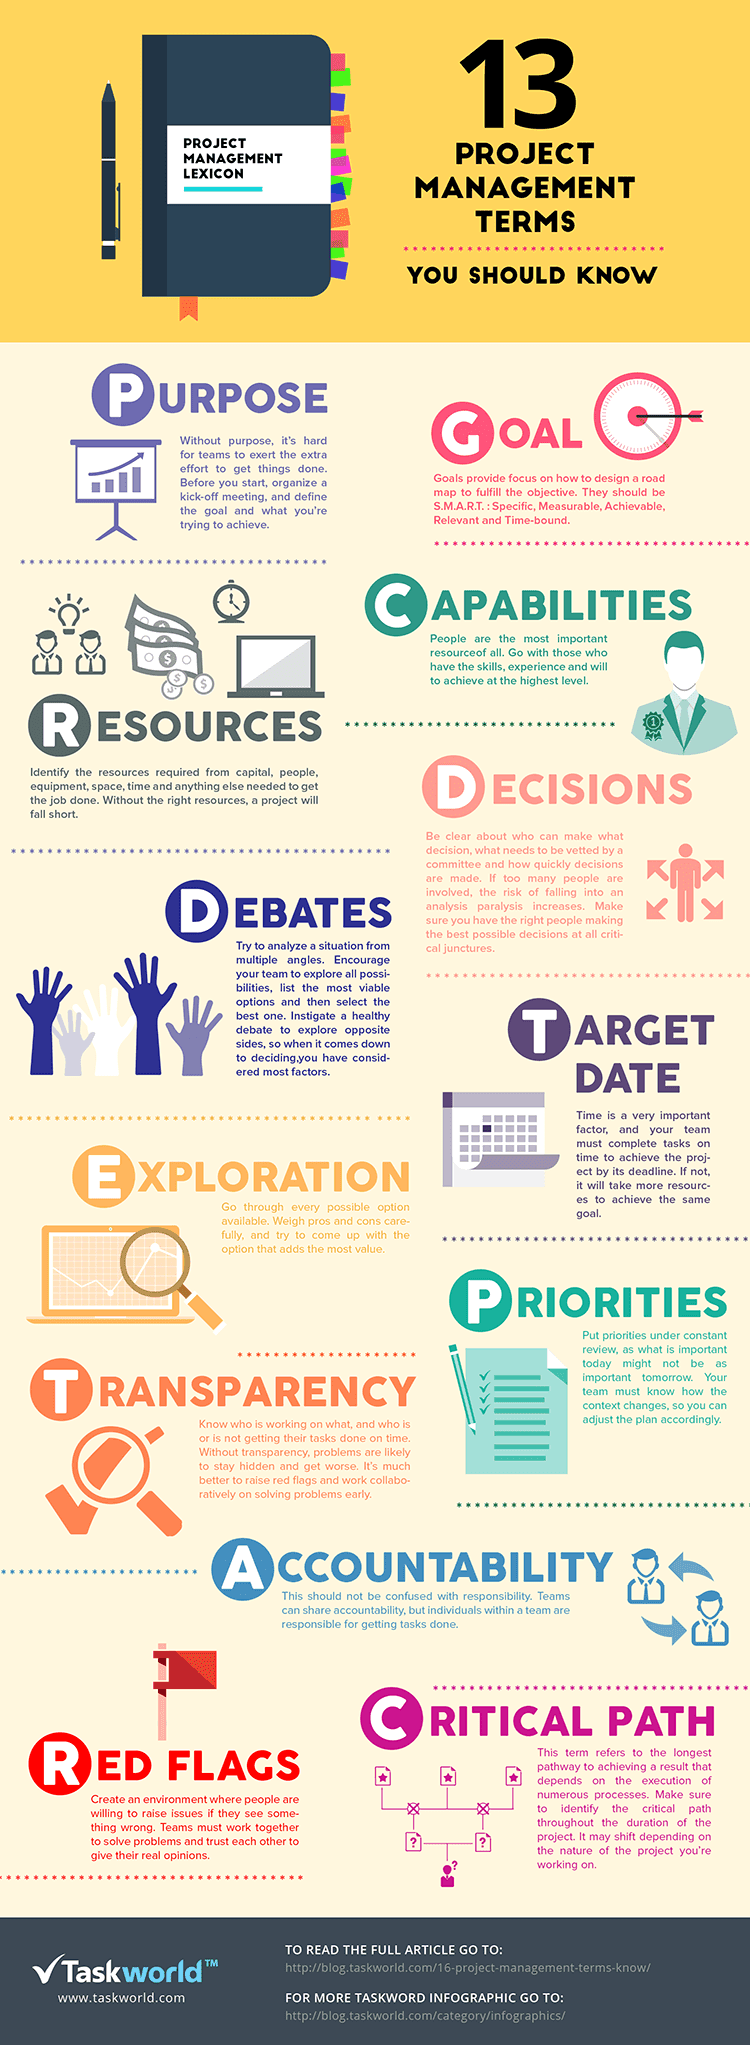 Infographic: 13 Project Management Terms You Should Know